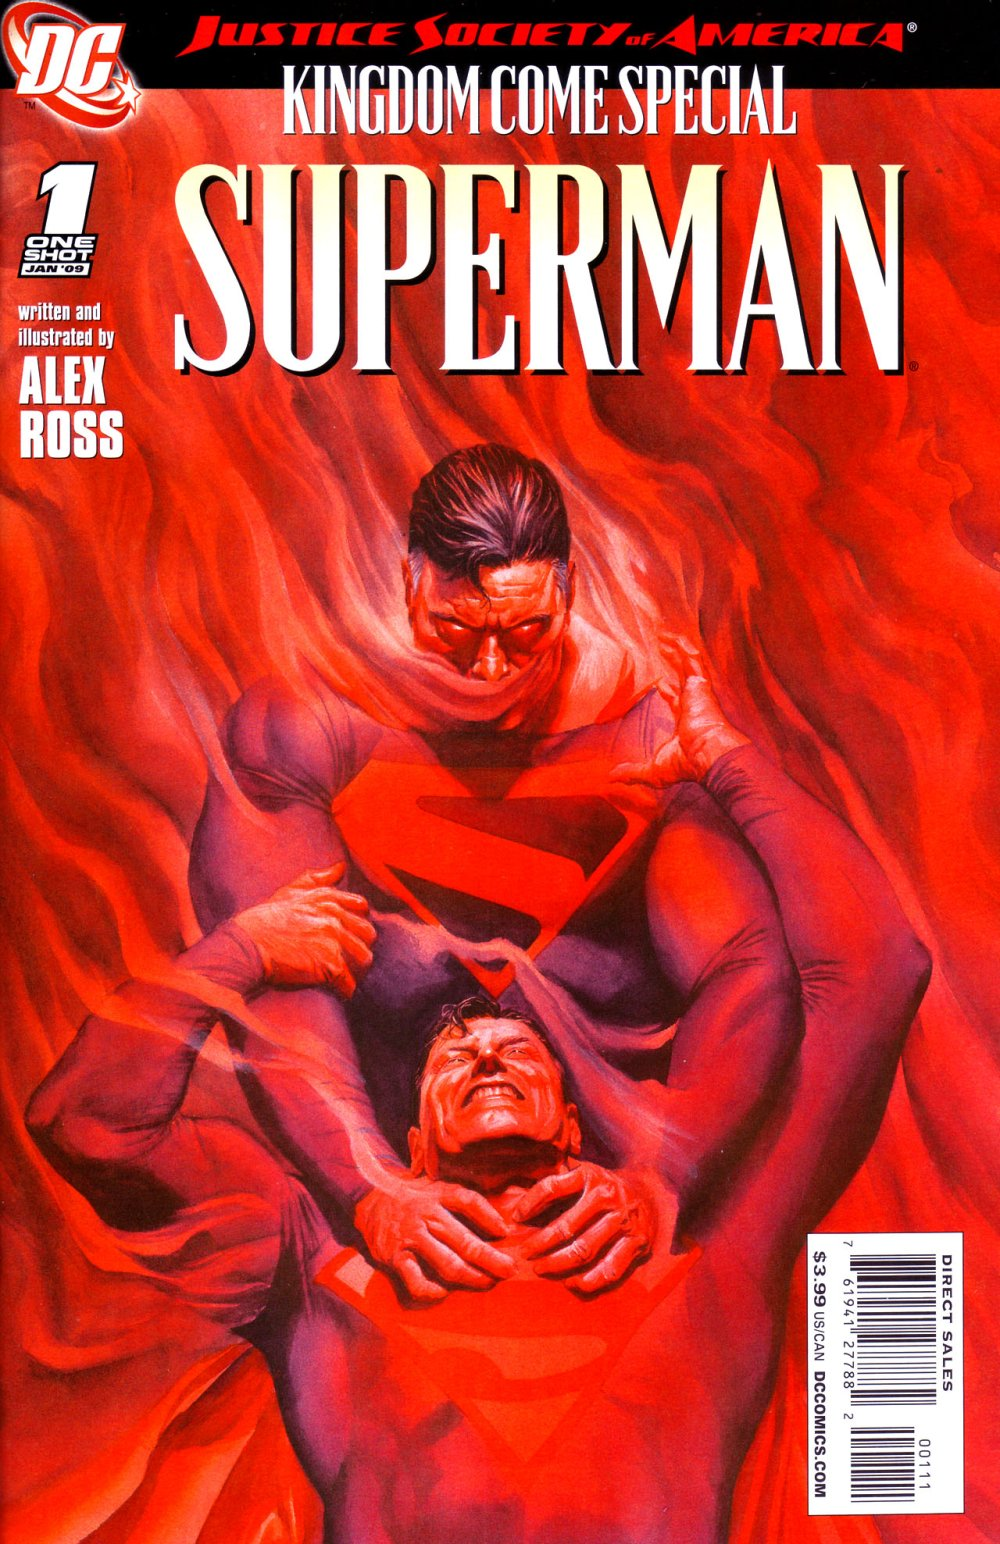 Justice Society Of America- Kingdom Come Special- Superman [DC] OS1 0001a.jpg